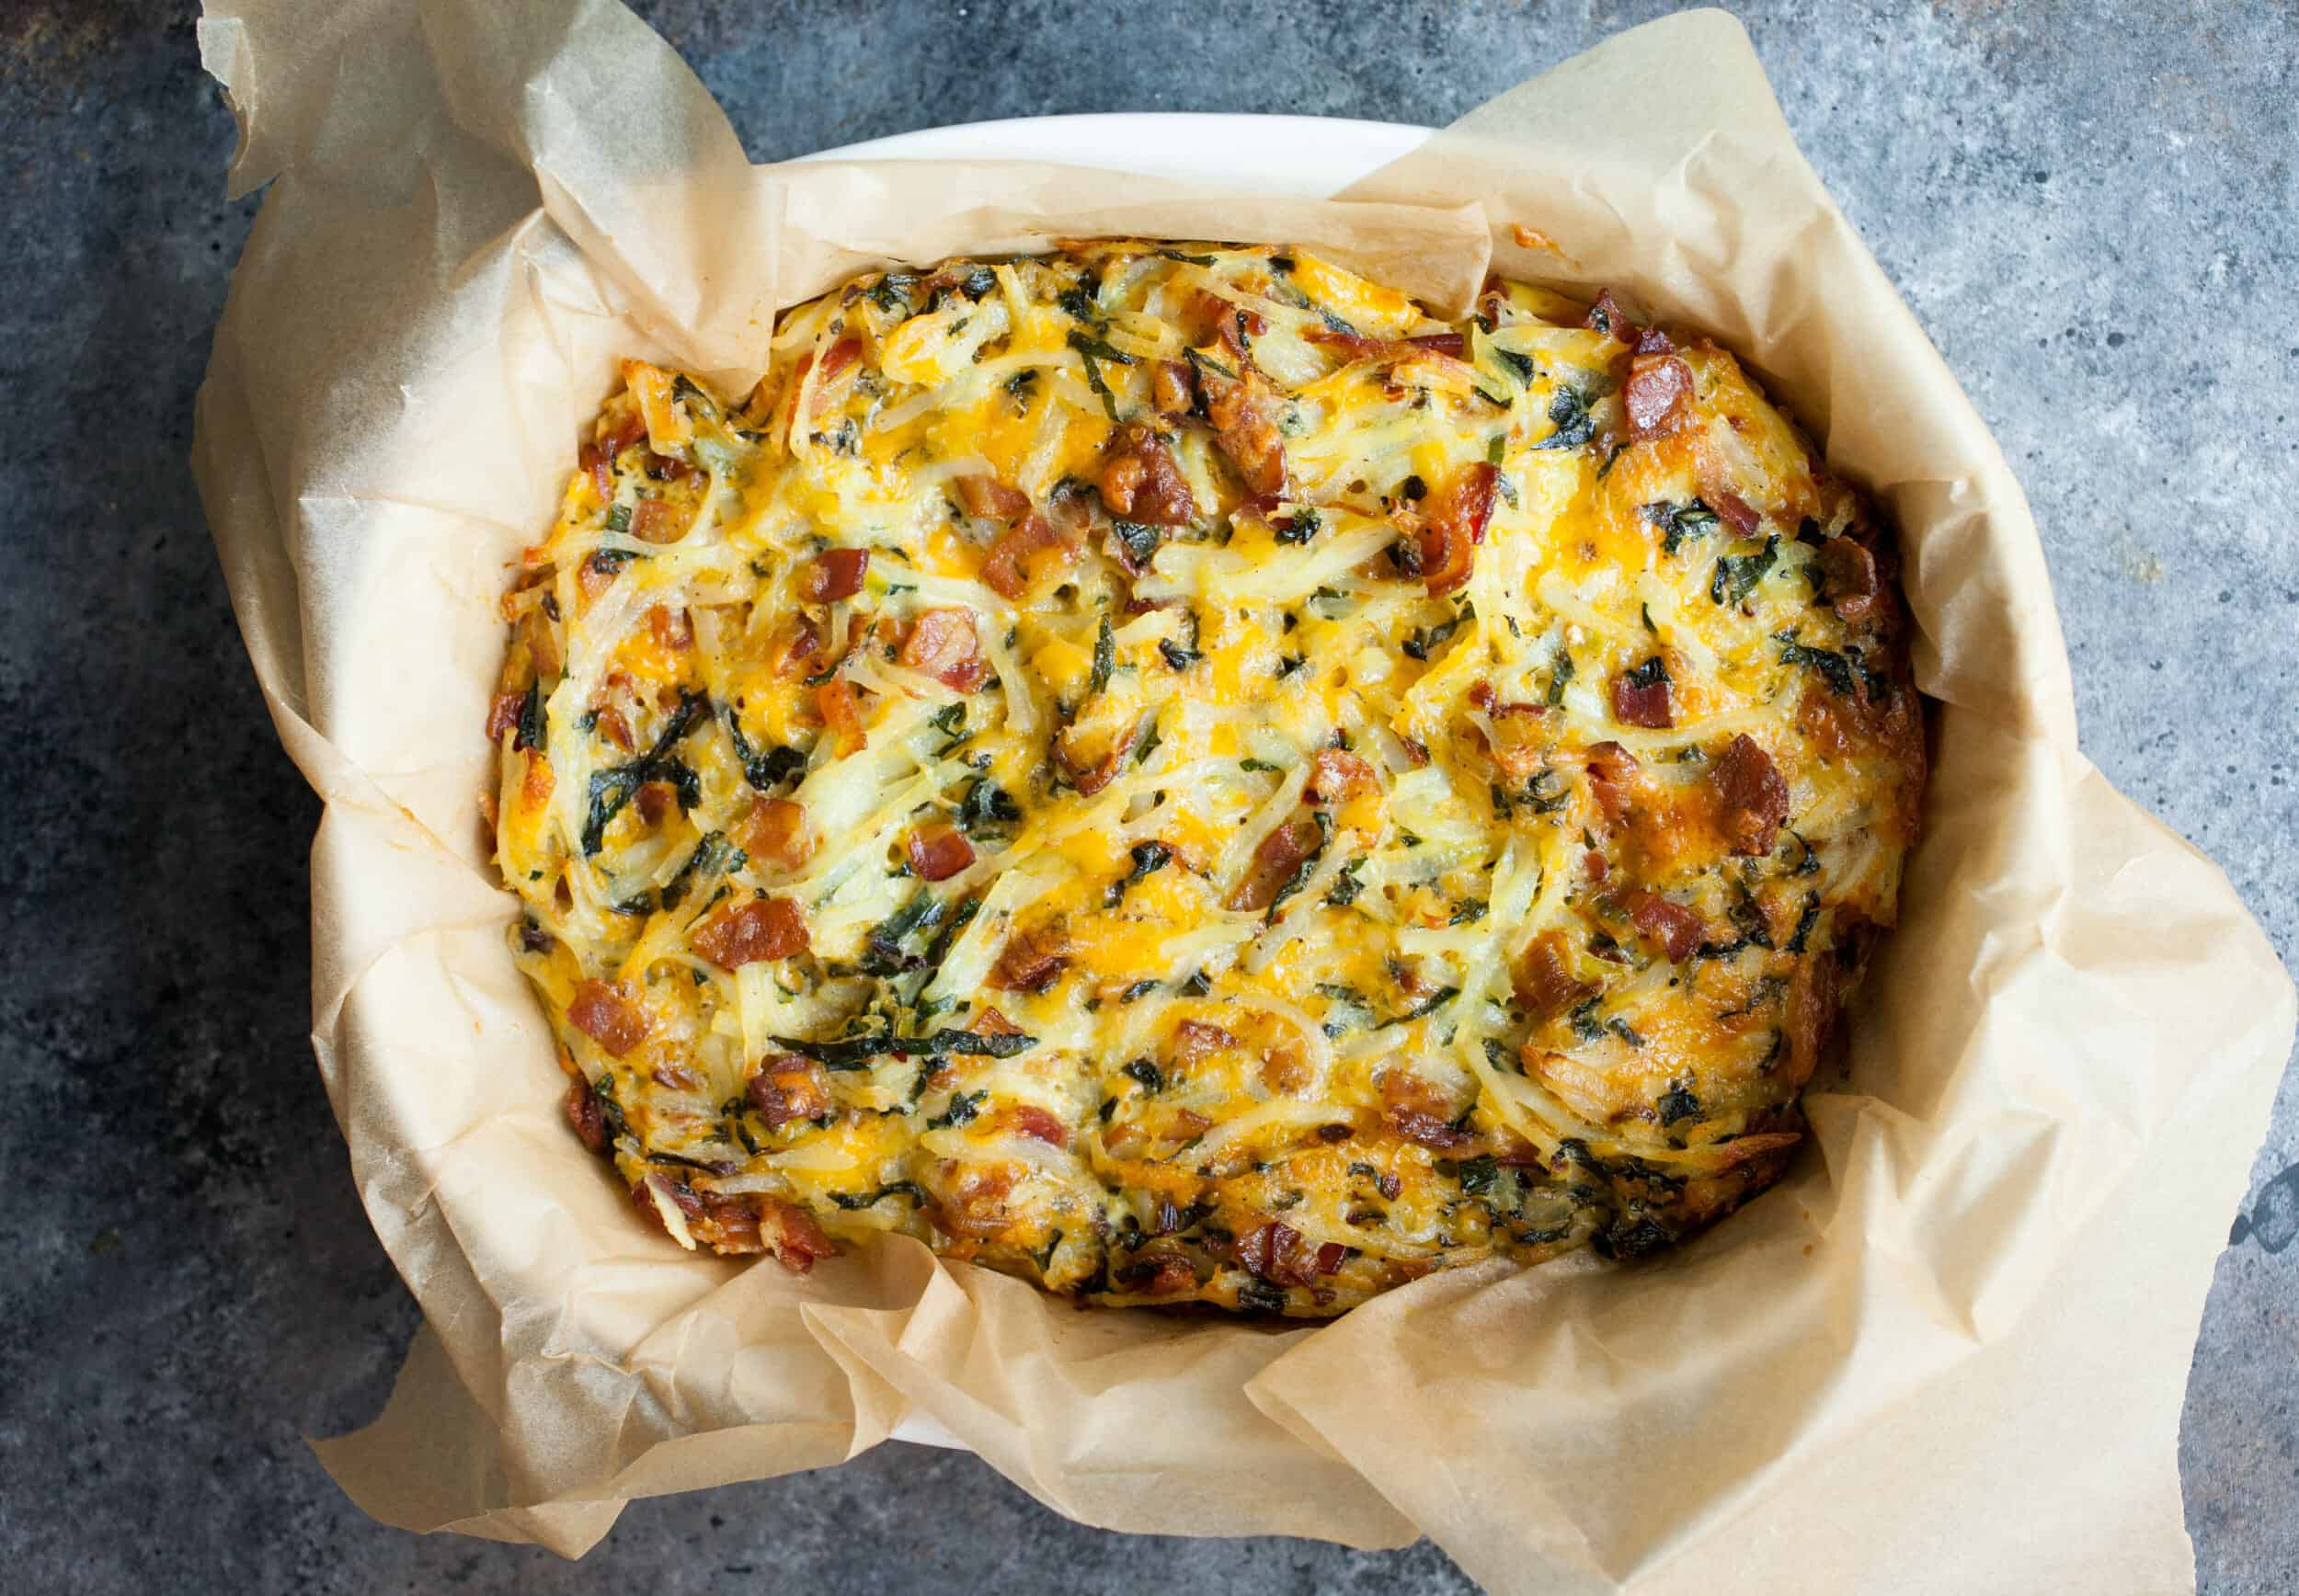 Potato Breakfast Pie with Bacon and Kale